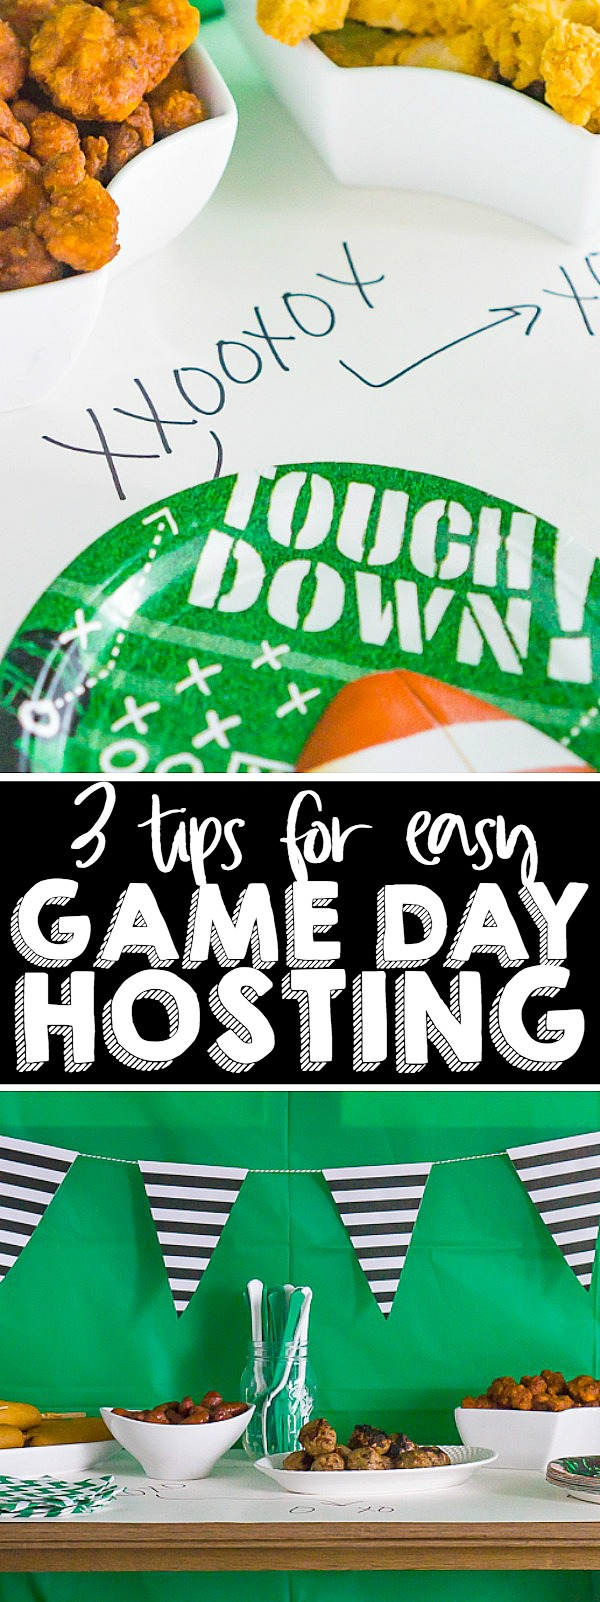 Easy Game Day Hosting Tips - Don't stress about hosting for the Big Game! Follow these 3 easy tips for hosting so you can spend less time preparing and more time enjoying! | THE LOVE NERDS